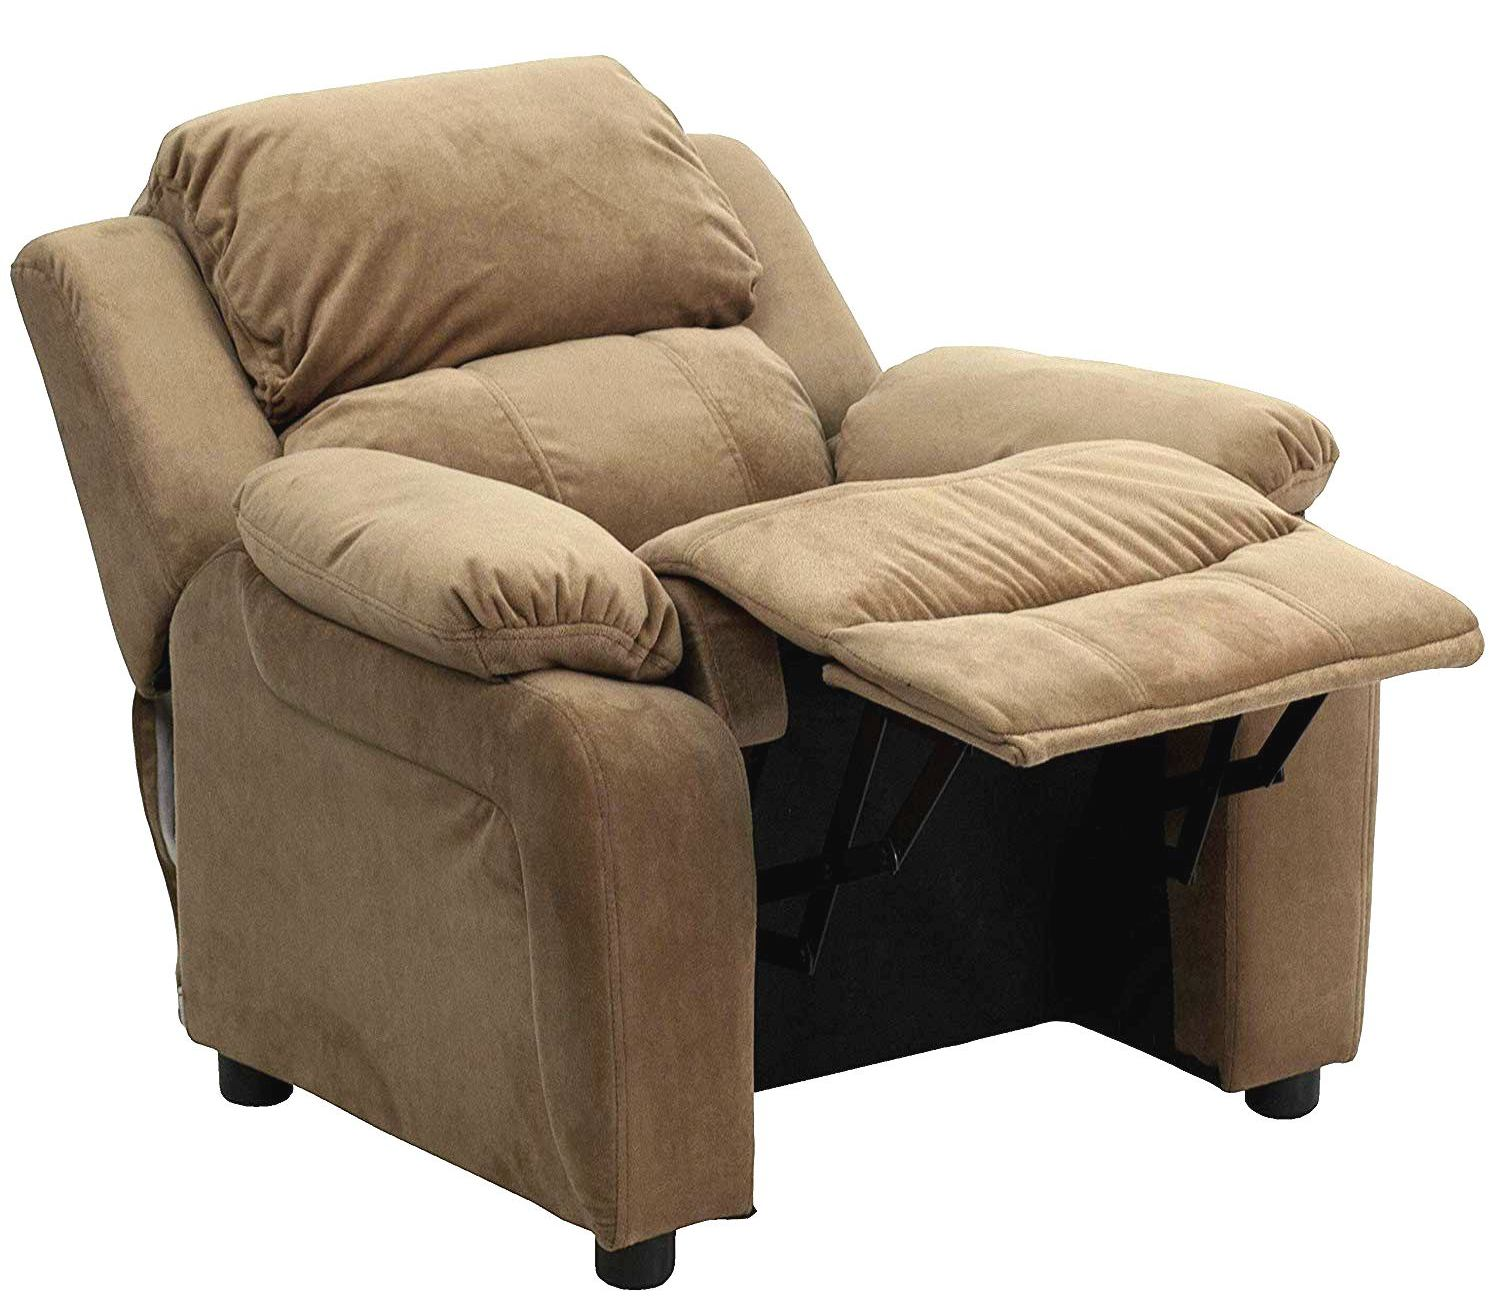 10 Best Kids Recliners (Upd. 2020) Review: How to Pick the Right